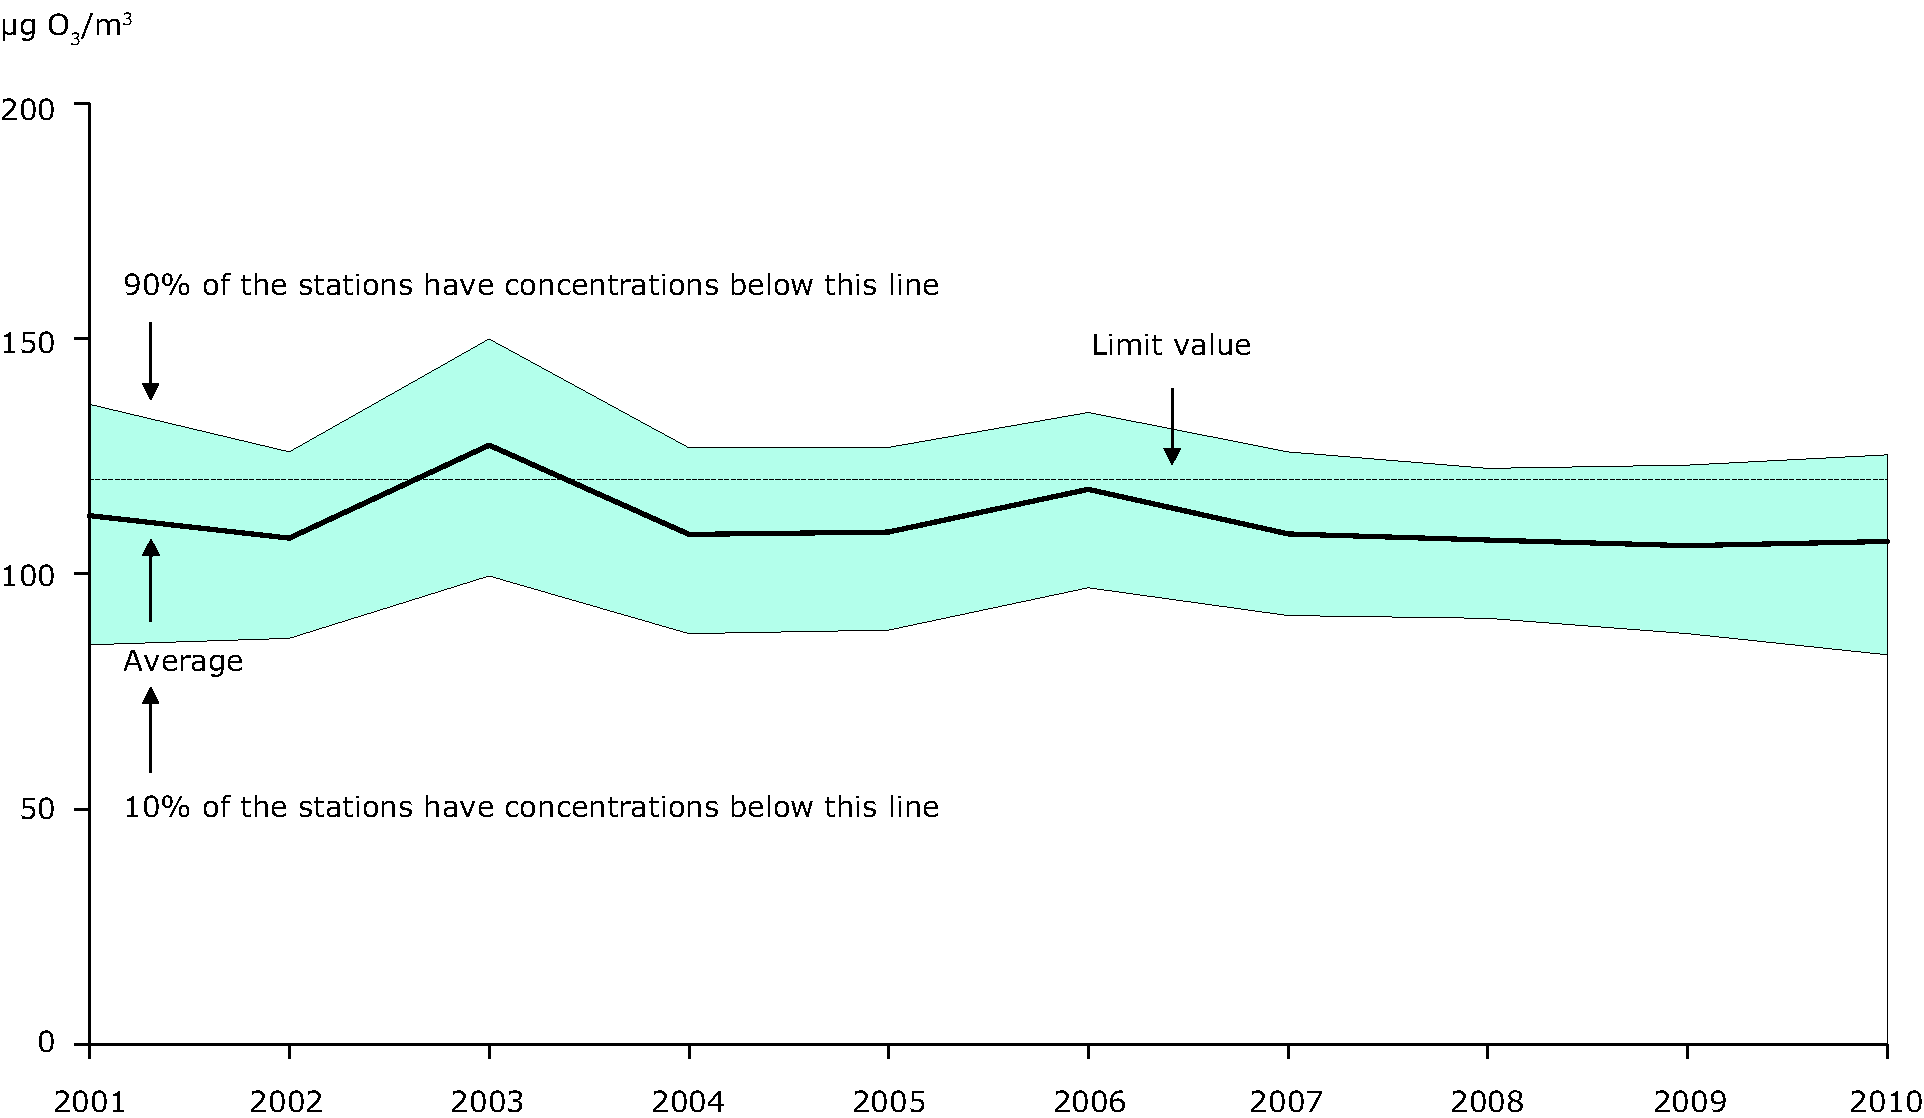 26th highest maximum daily 8-hour mean ozone concentration observed at urban background stations, 2001-2010 (EU-27)